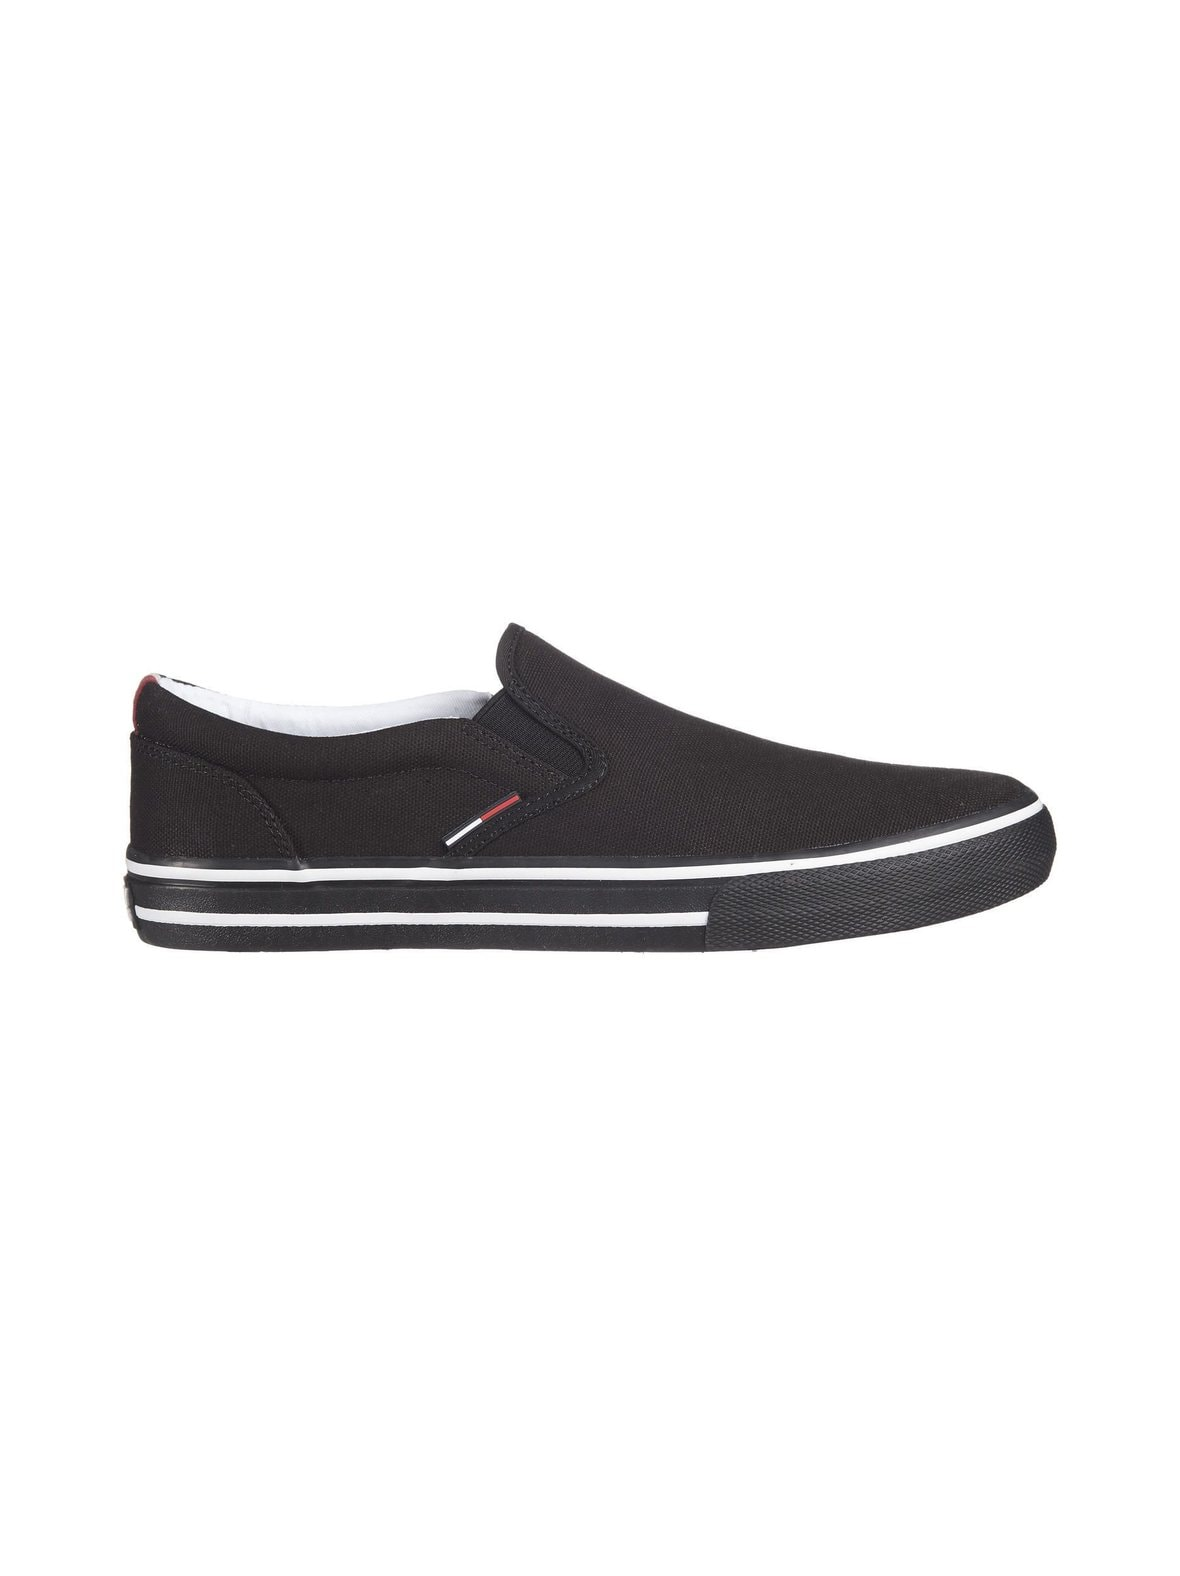 TOMMY HILFIGER – Slip On -tennarit